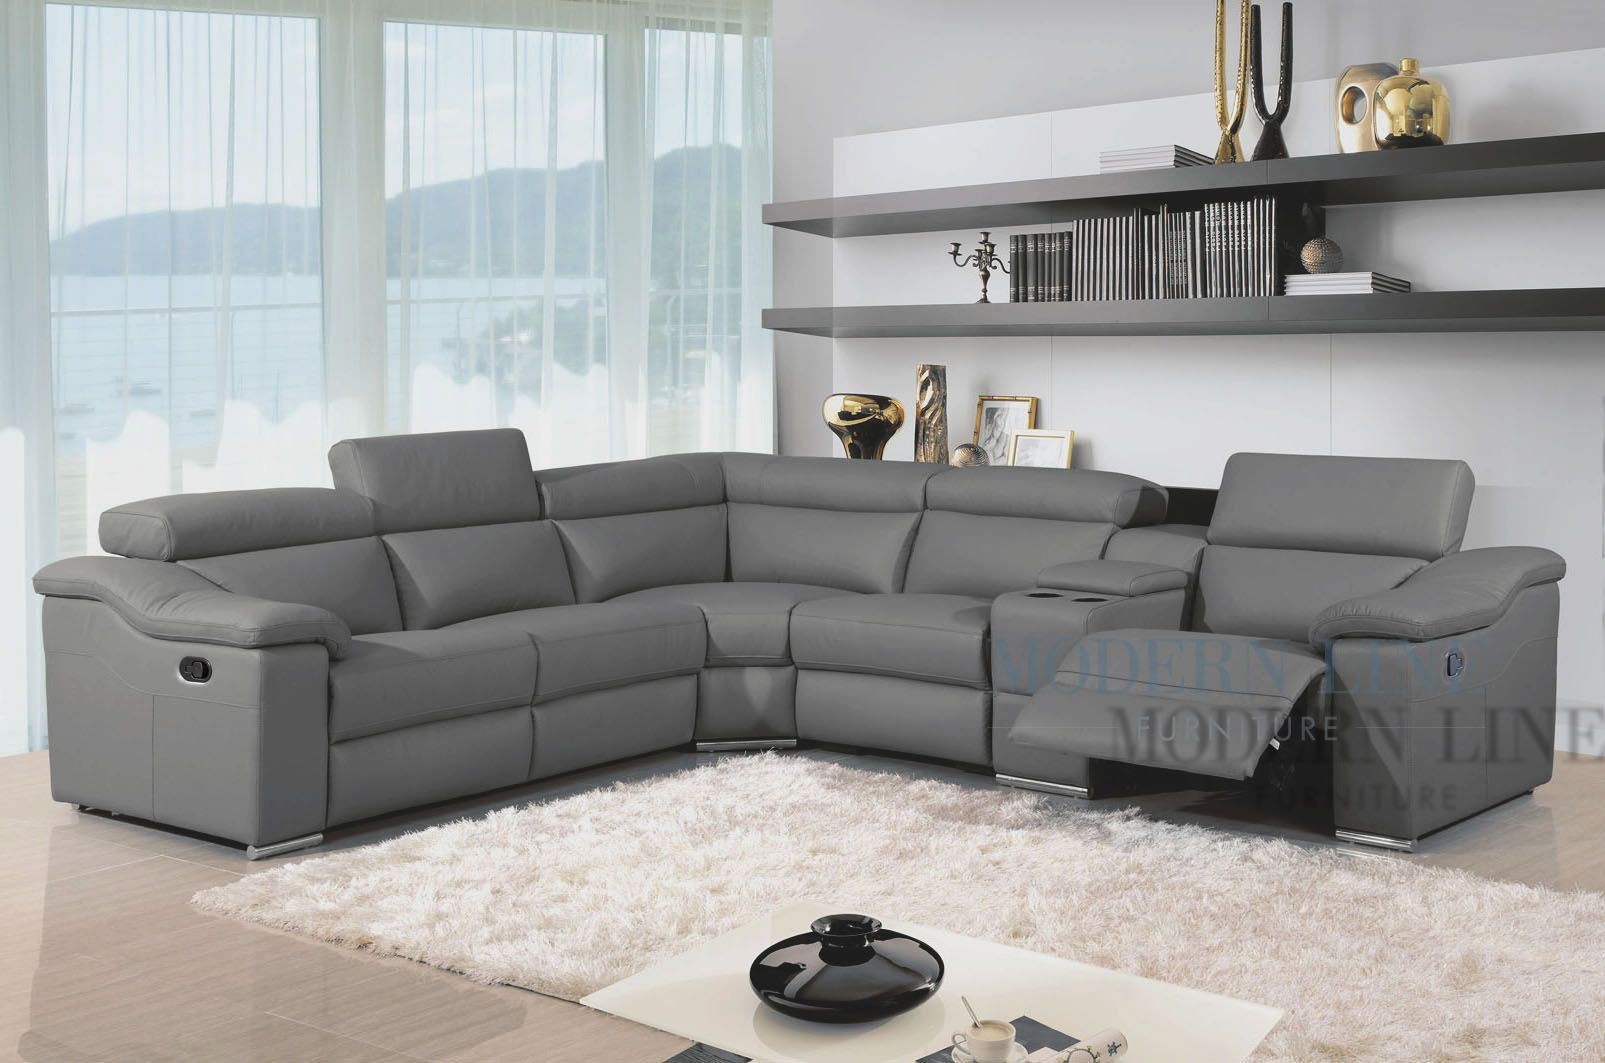 modern leather reclining sectional grey leather modern sectional rh pinterest com sectional sofas with recliners sectional sofas with recliners and cup holders